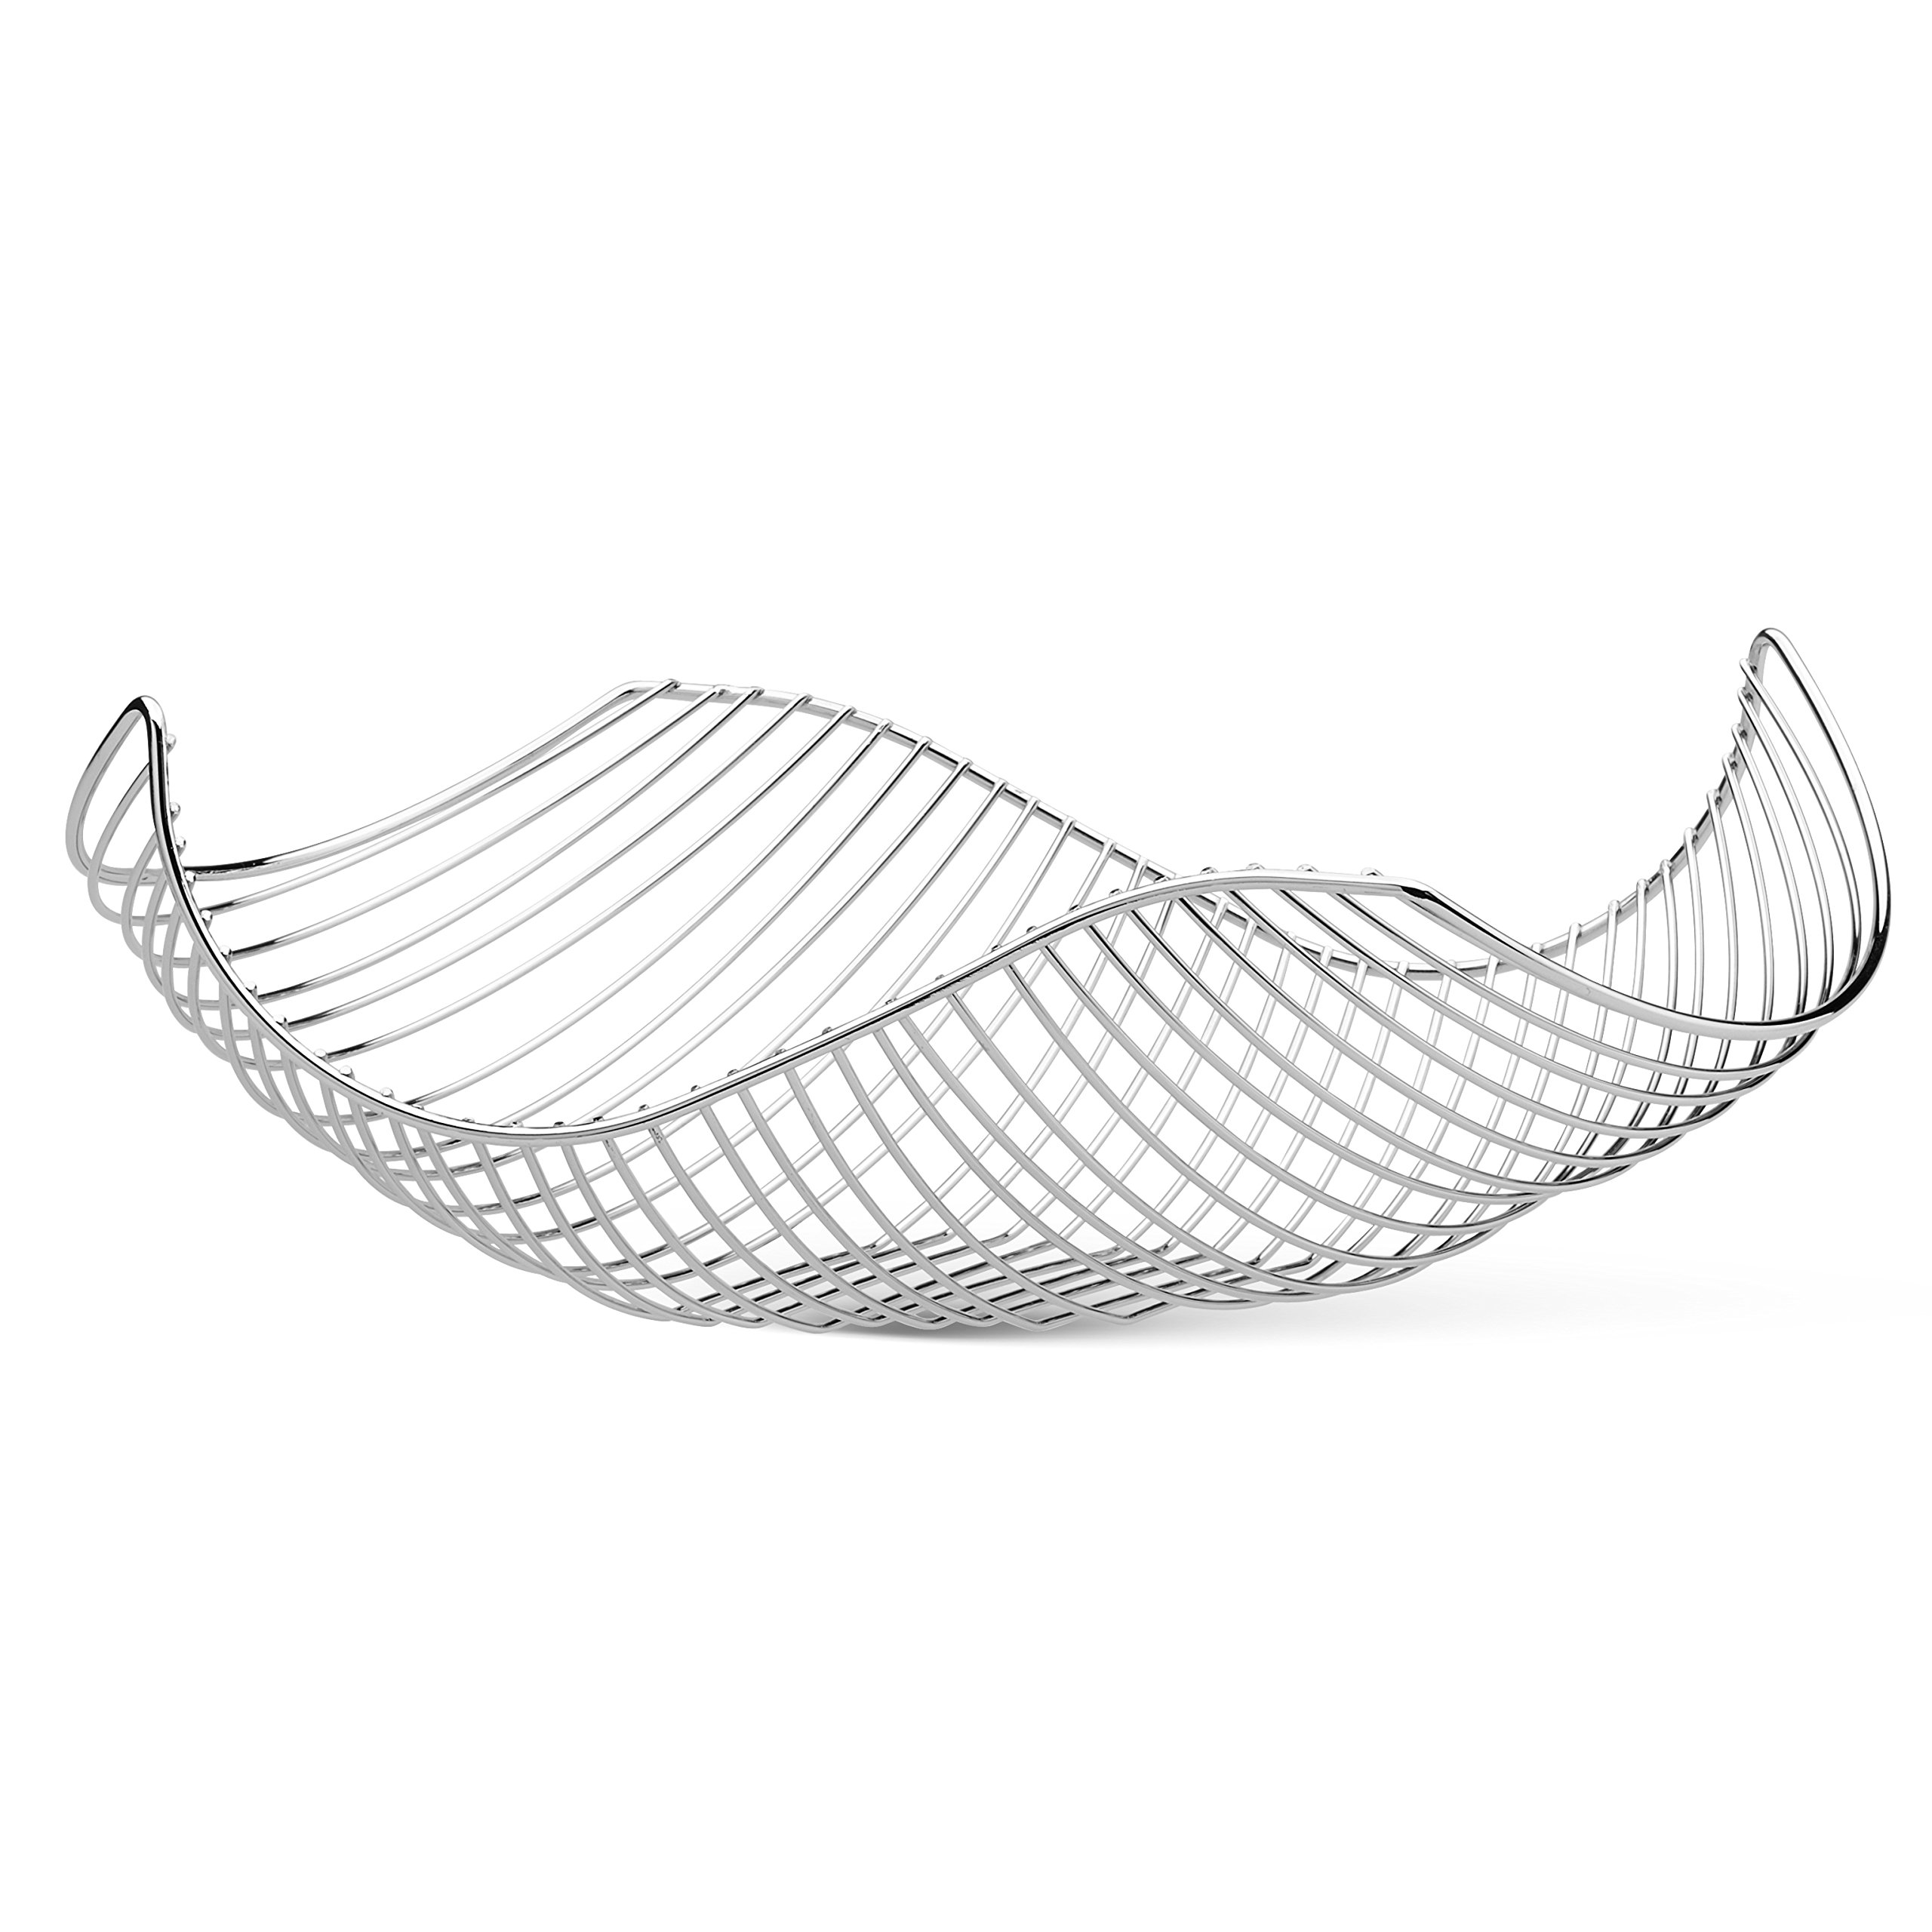 Vistella Fruit Bowl Basket in Chrome Silver - Stainless Steel Wire Design with a Modern Style - Decorative Countertop Centerpiece or Serving Storage Basket